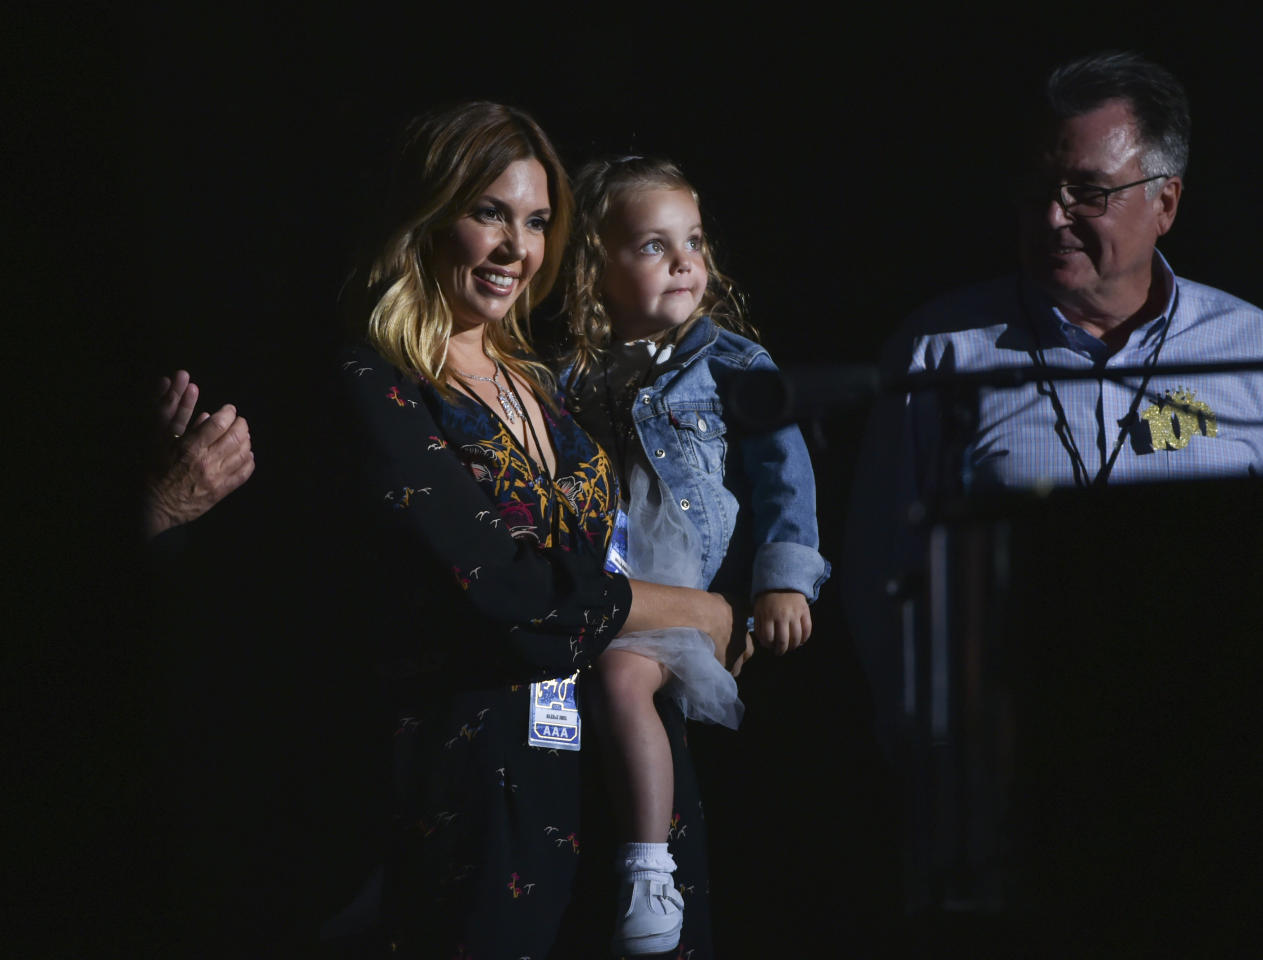 Musician Billy Joel's wife Alexis Roderick and his daughter Della Rose Joel smile on stage during his 100th lifetime performance at Madison Square Garden on Wednesday, July 18, 2018, in New York. (Photo by Evan Agostini/Invision/AP)